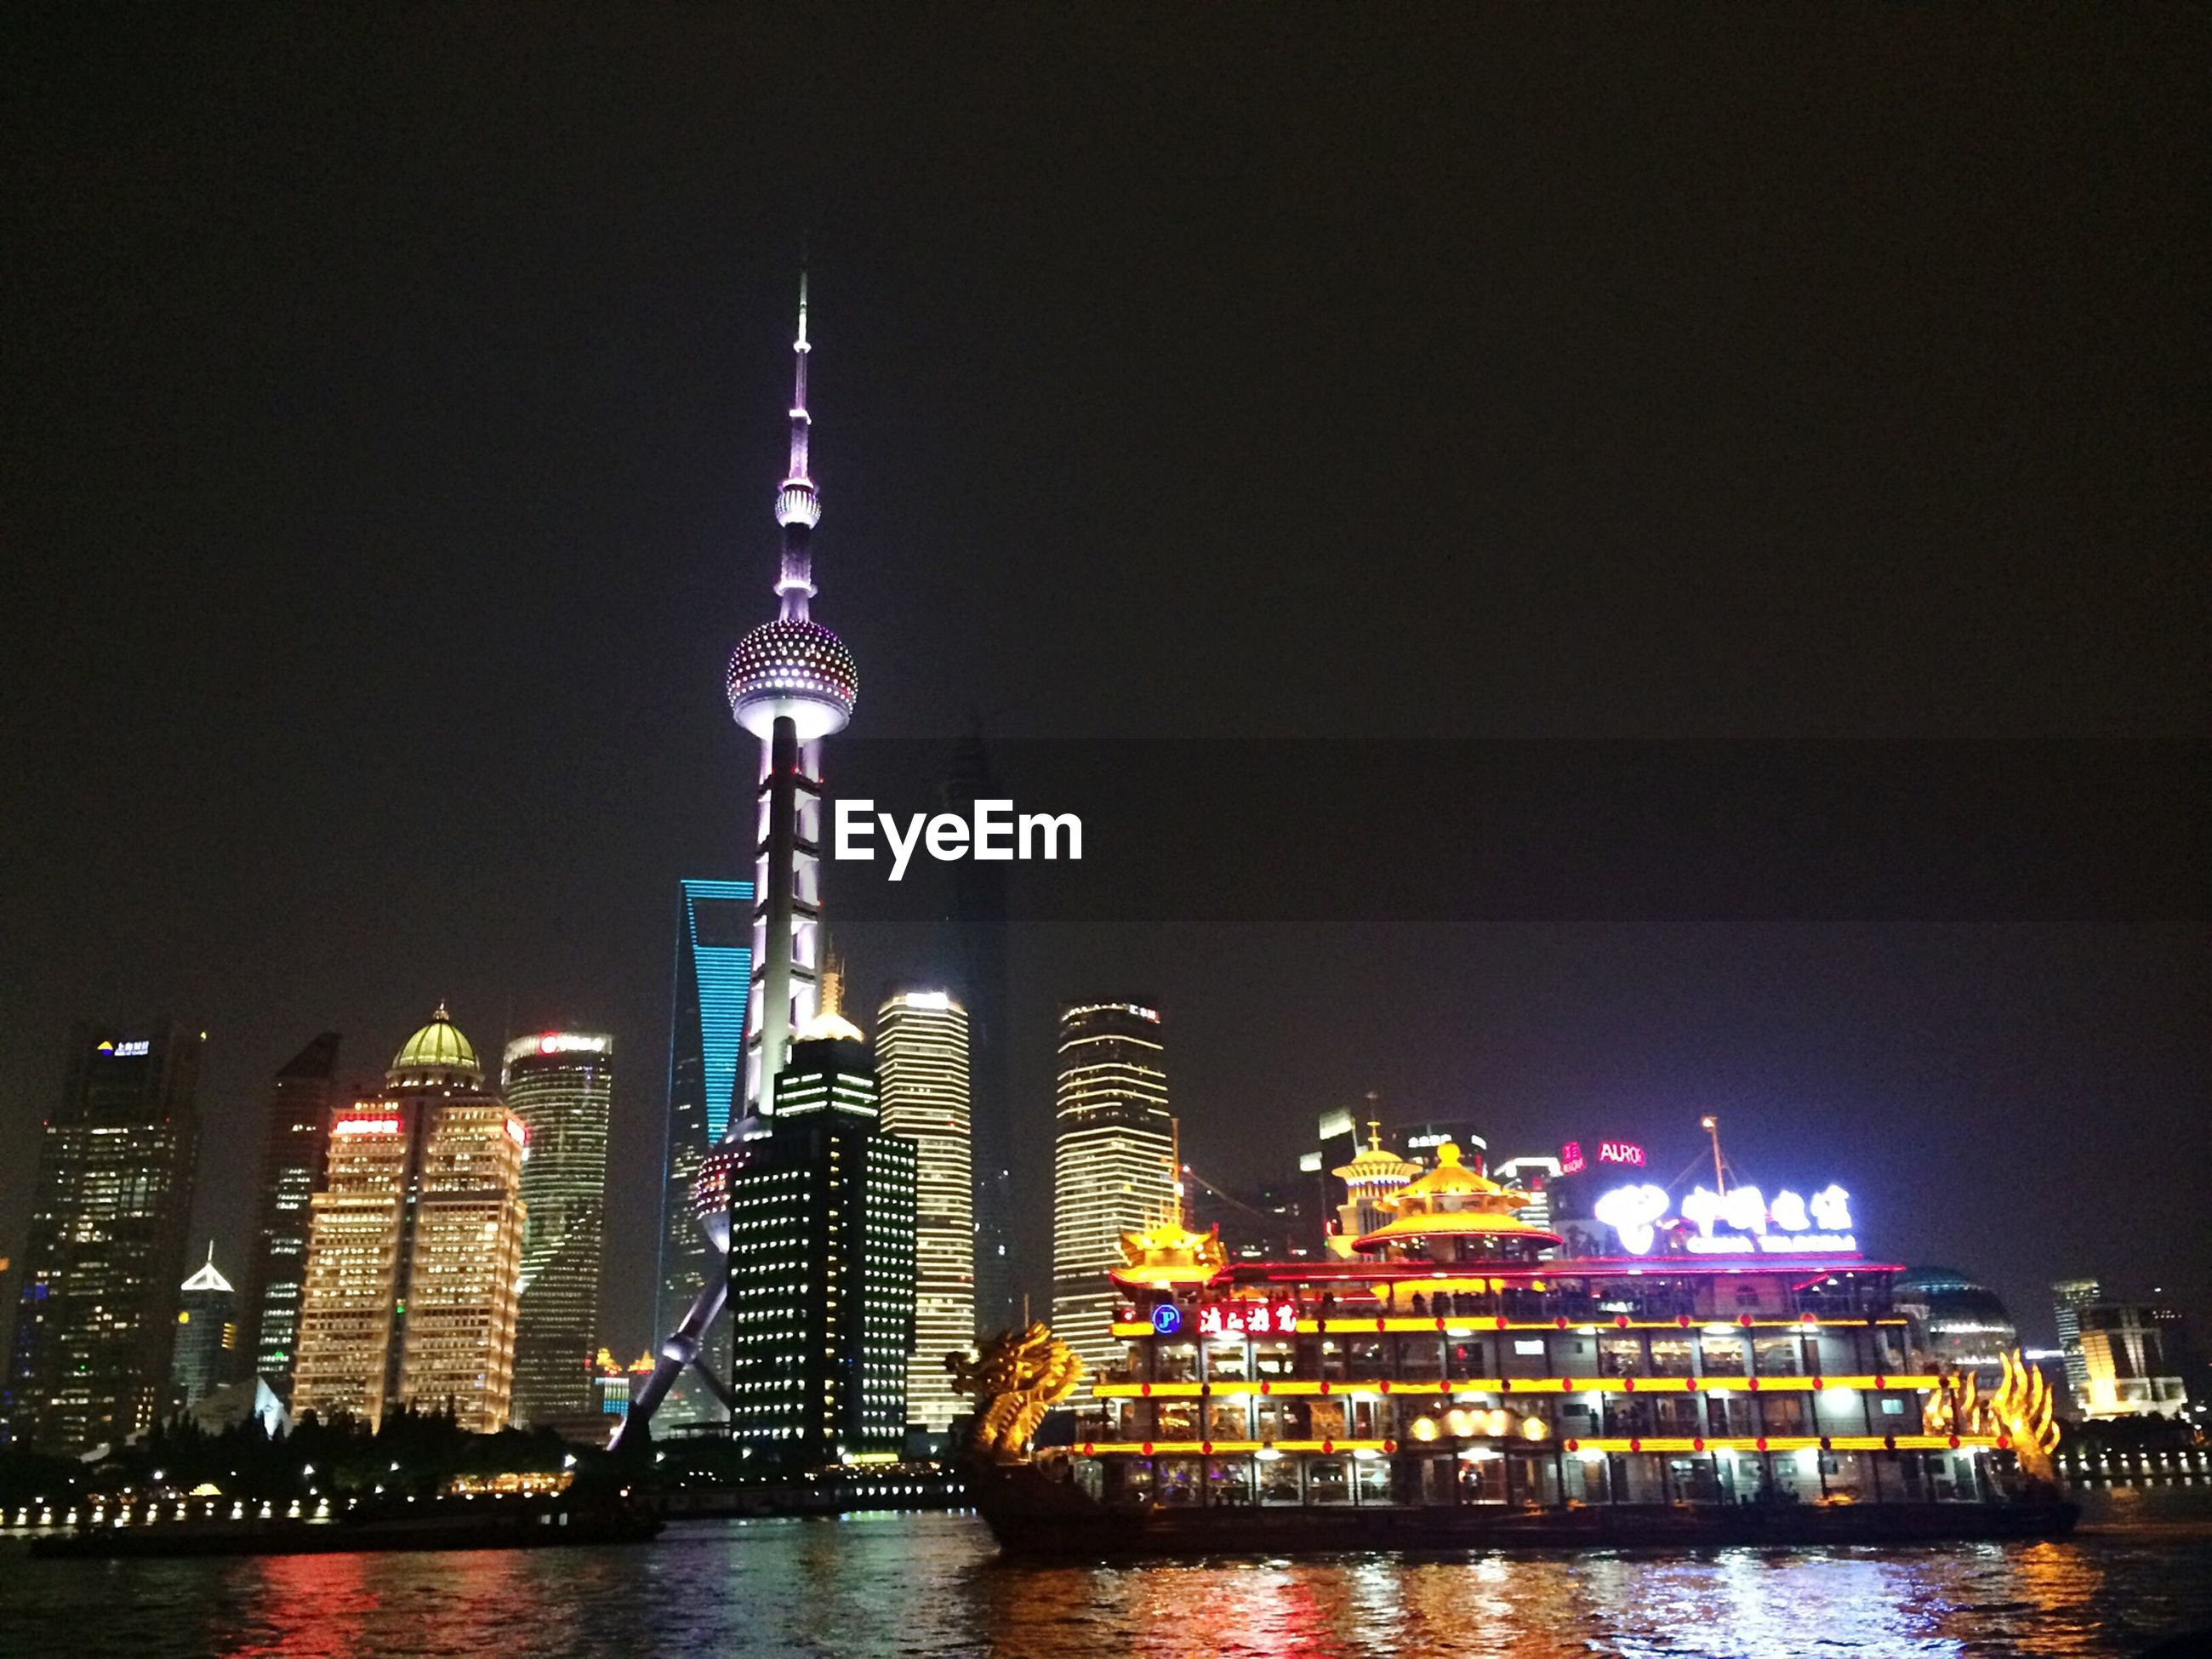 architecture, building exterior, built structure, illuminated, city, night, tower, tall - high, skyscraper, waterfront, water, cityscape, modern, travel destinations, river, capital cities, office building, urban skyline, famous place, international landmark